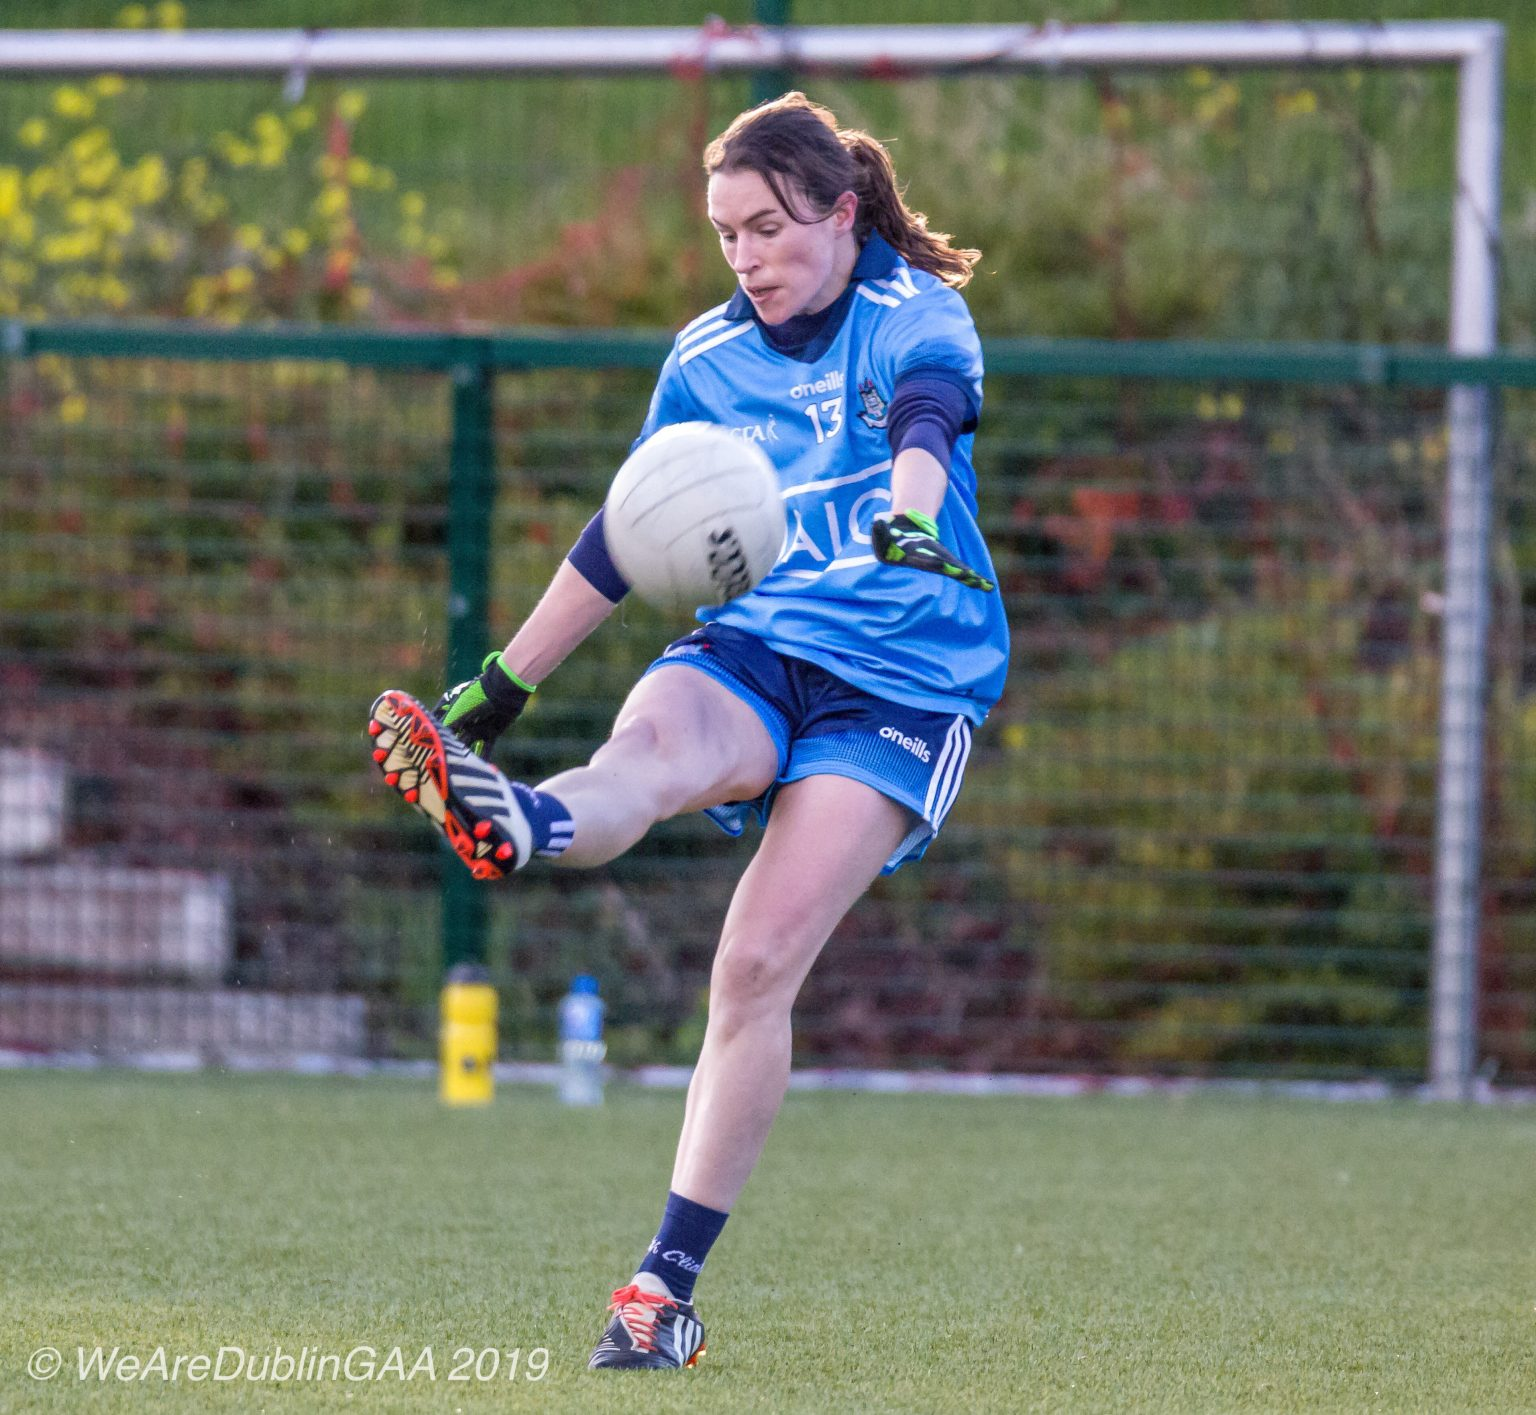 Dublin's Sinead Aherne In a sky blue jersey and navy shorts scored 3-03 to guide Dublin to a League Semi Final Spot